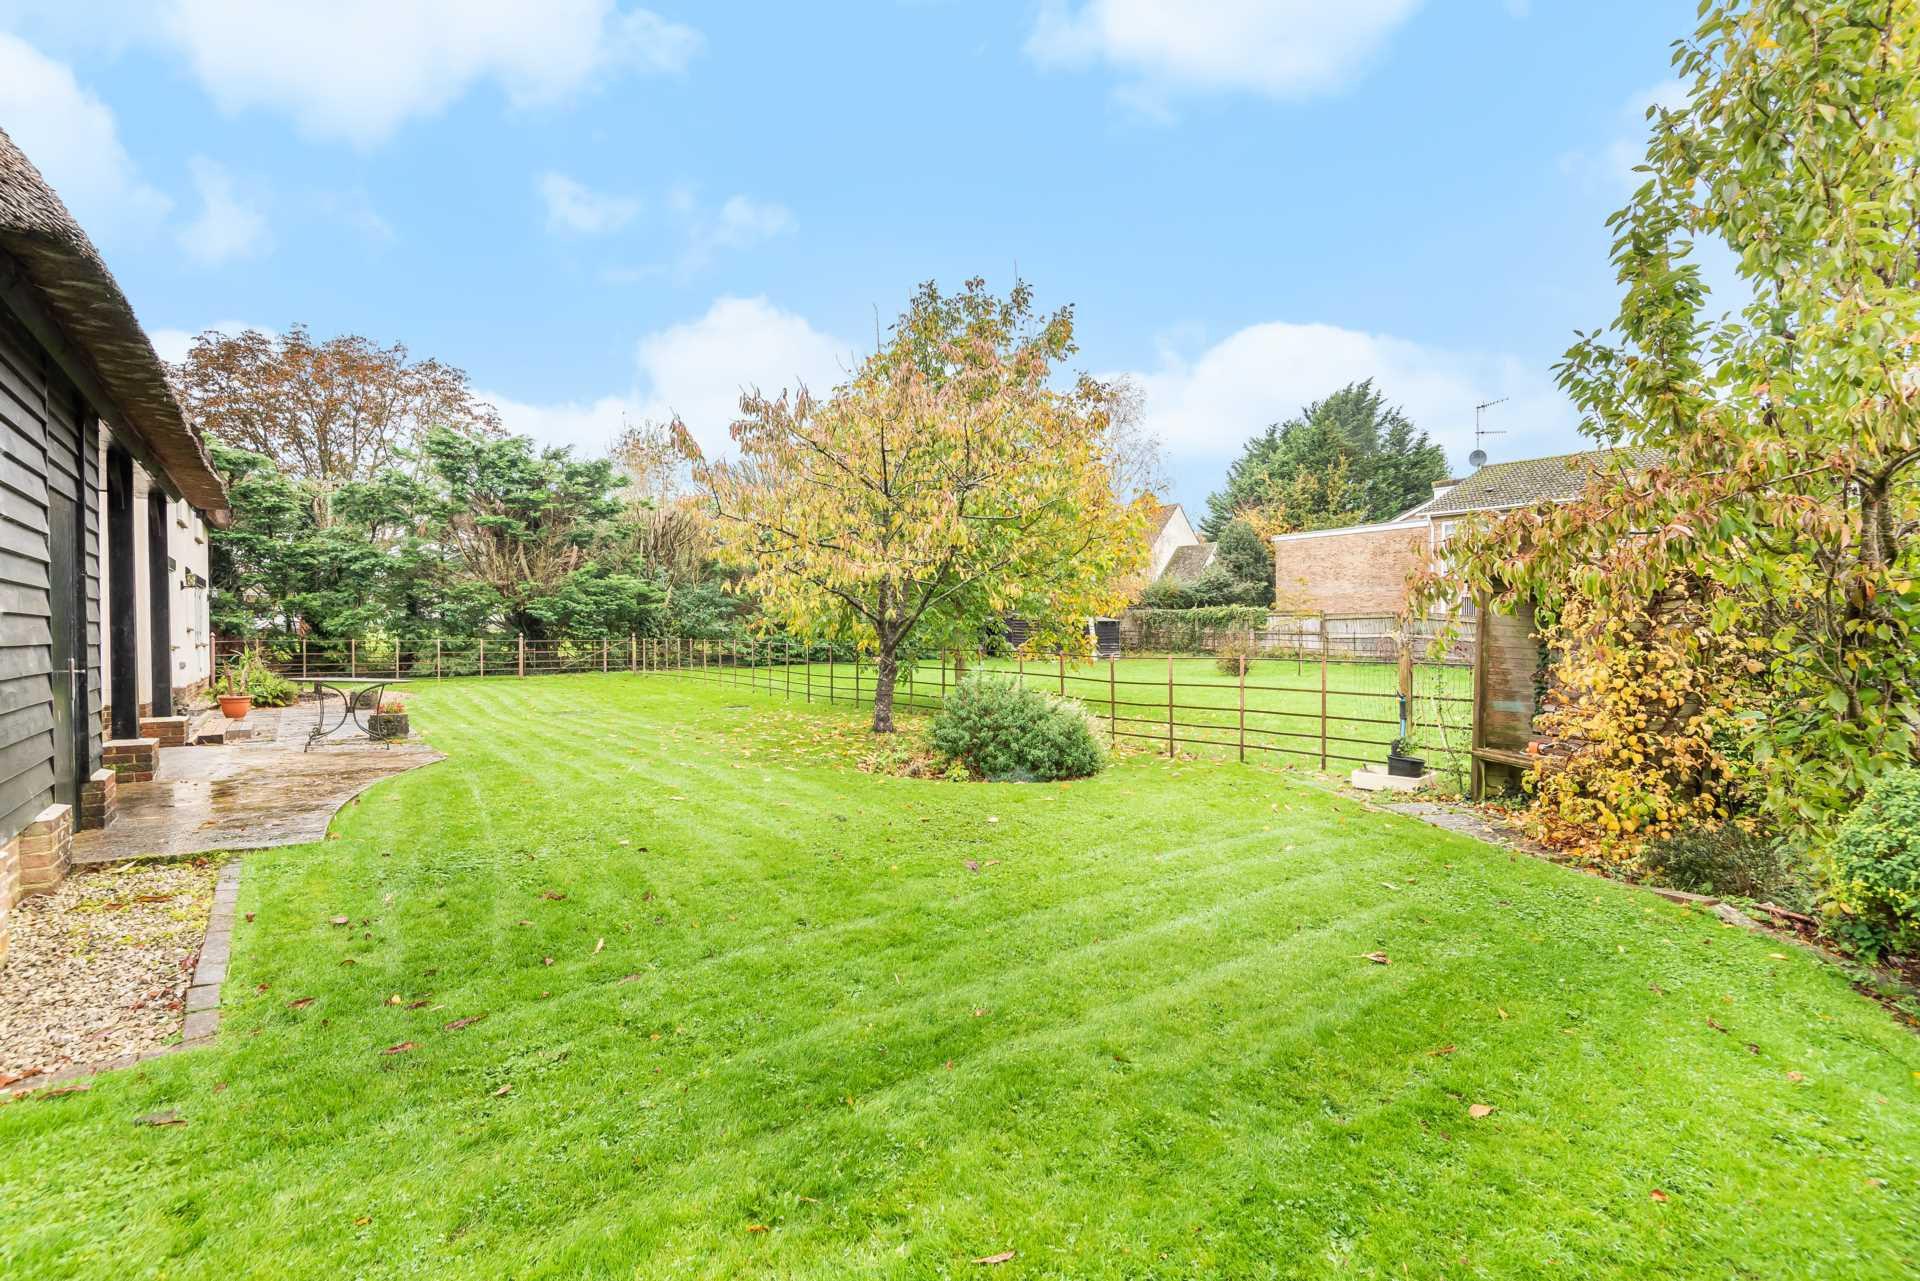 4 bed detached house for sale in Wagtails, Whatcombe Lane, Winterborne Whitechurch, Blandford Forum  - Property Image 4